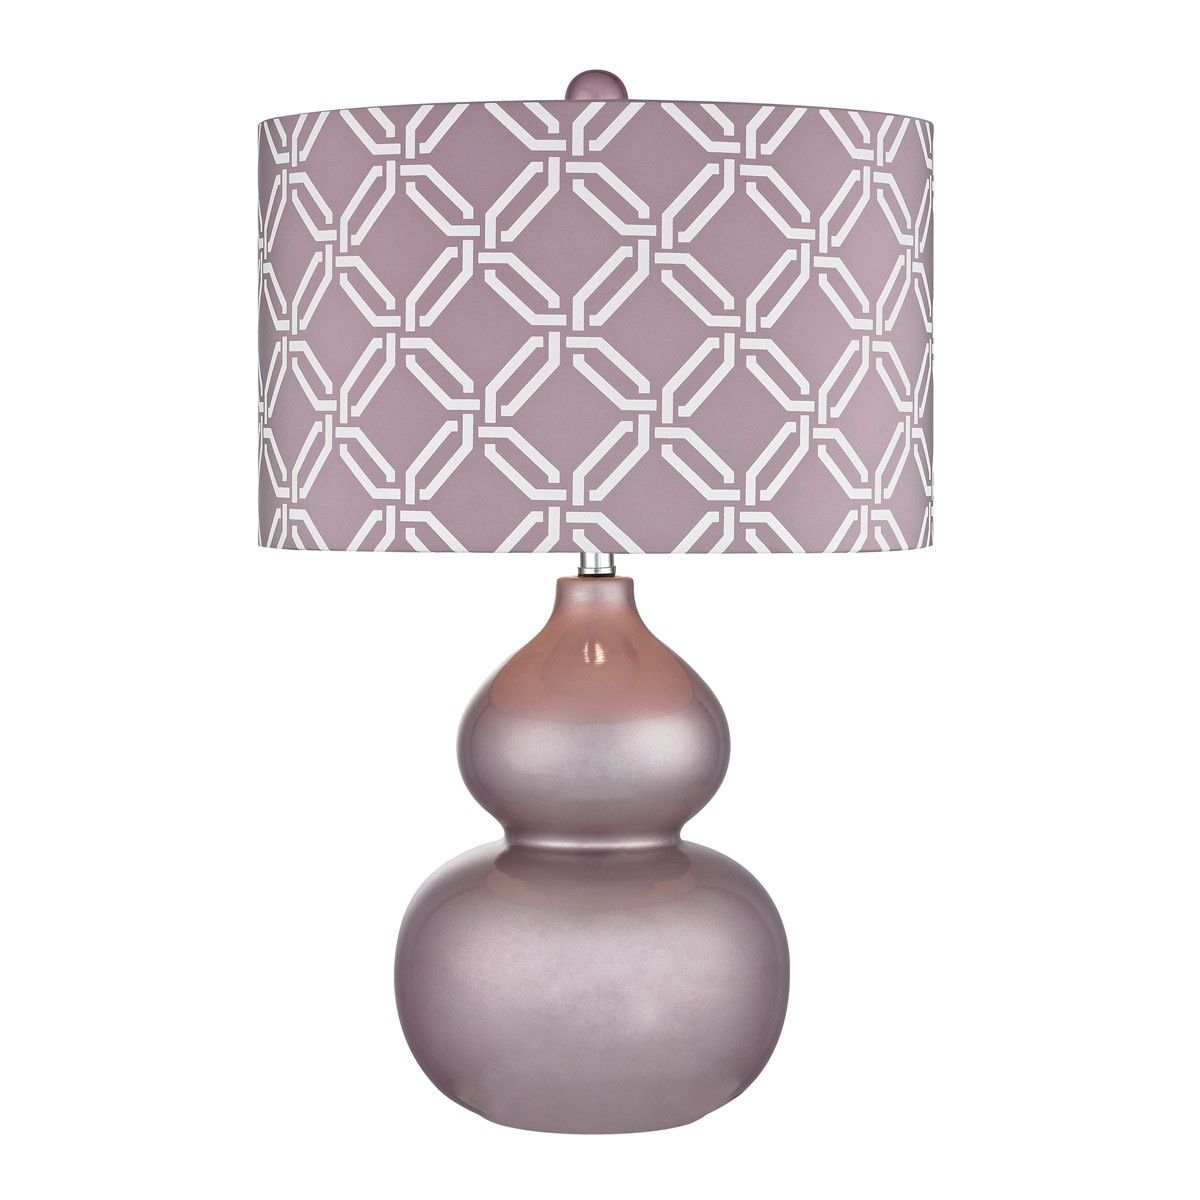 Dimond lighting lilac table lamp with linked rings shade d2528 dimond lighting lilac table lamp with linked rings shade d2528 geotapseo Image collections